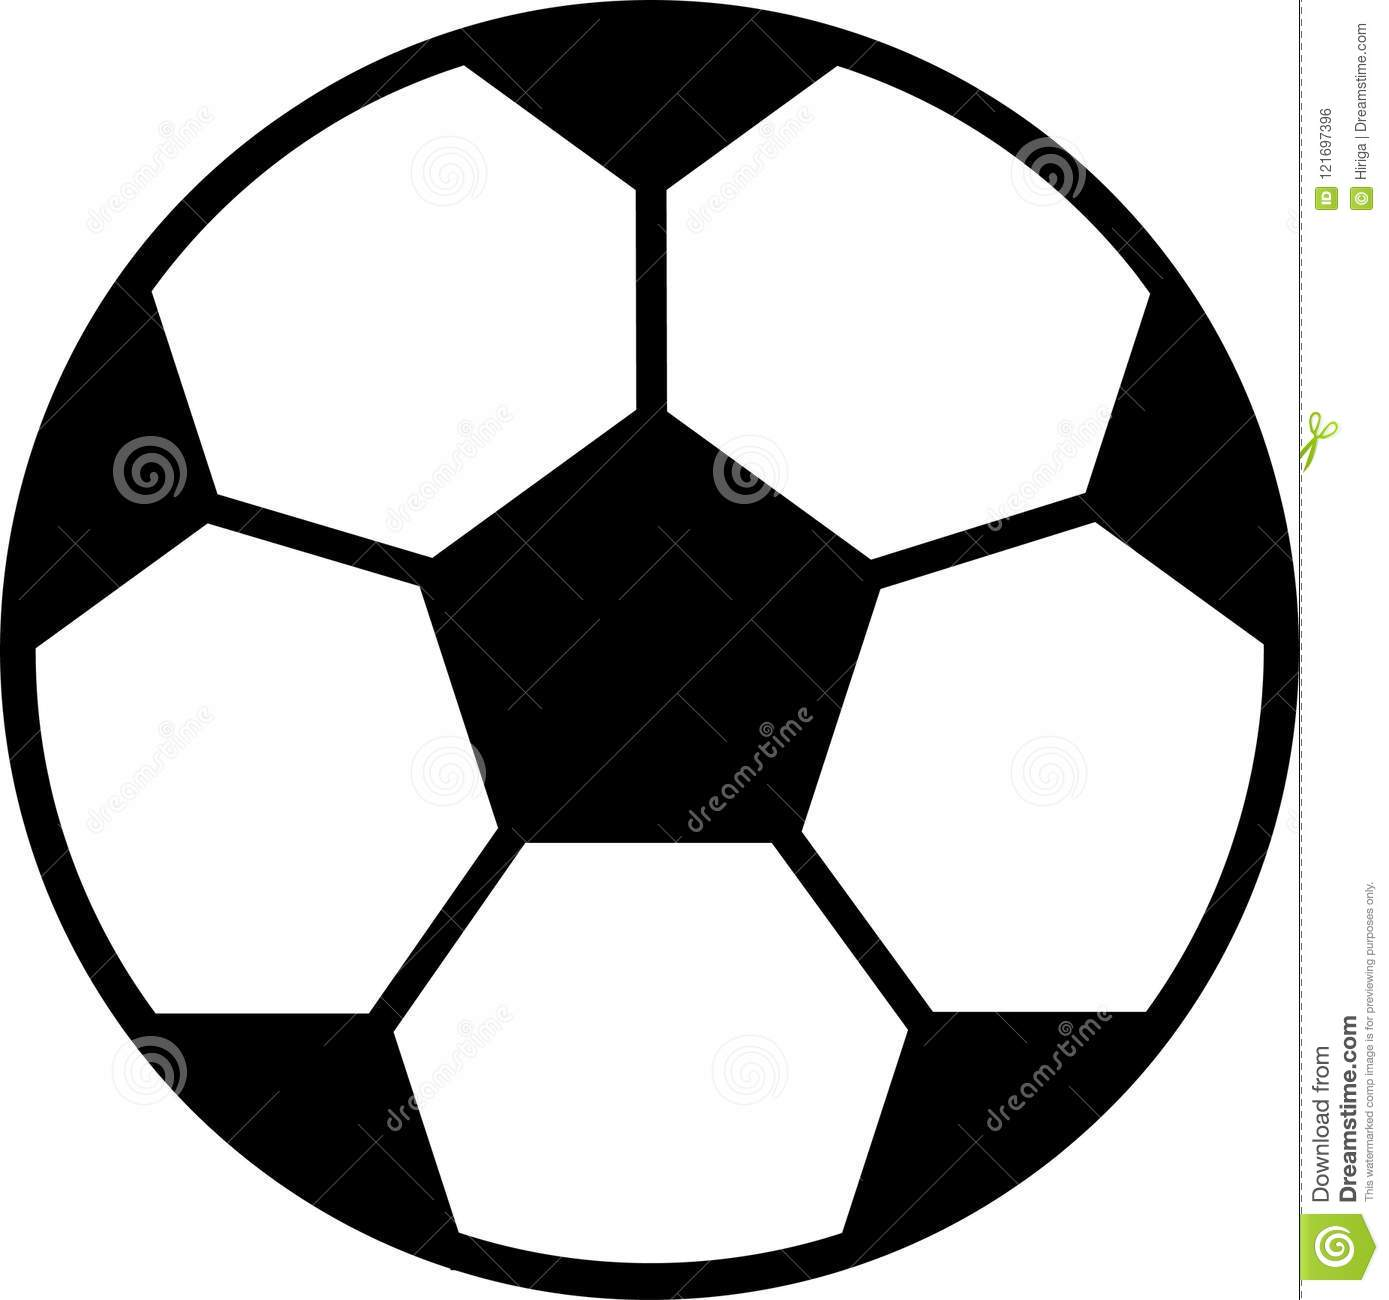 black white football icon stock illustrations – 20,735 black white football  icon stock illustrations, vectors & clipart - dreamstime  dreamstime.com